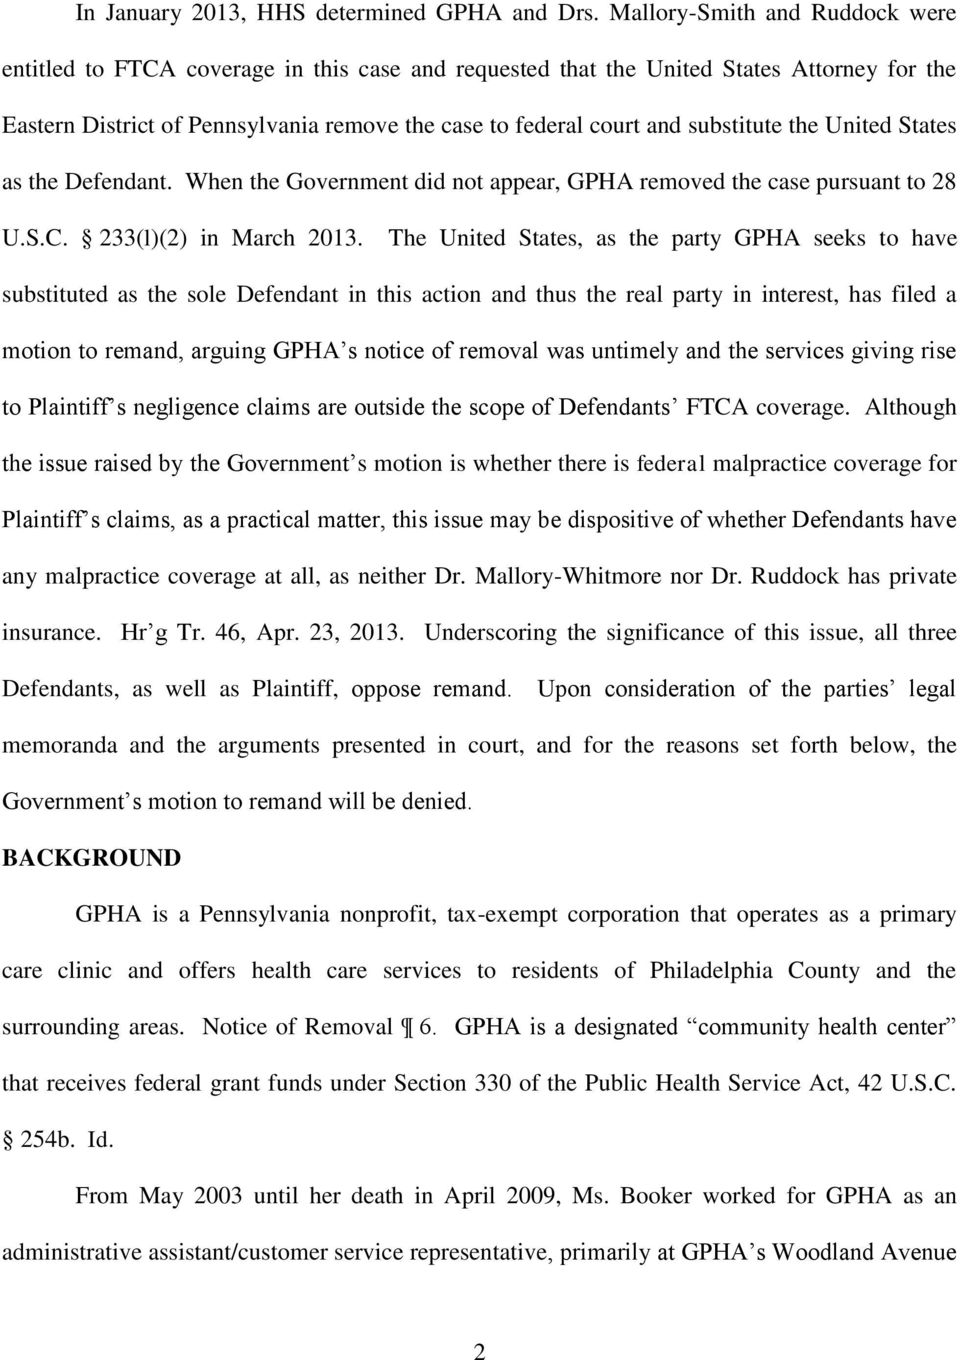 substitute the United States as the Defendant. When the Government did not appear, GPHA removed the case pursuant to 28 U.S.C. 233(l)(2) in March 2013.